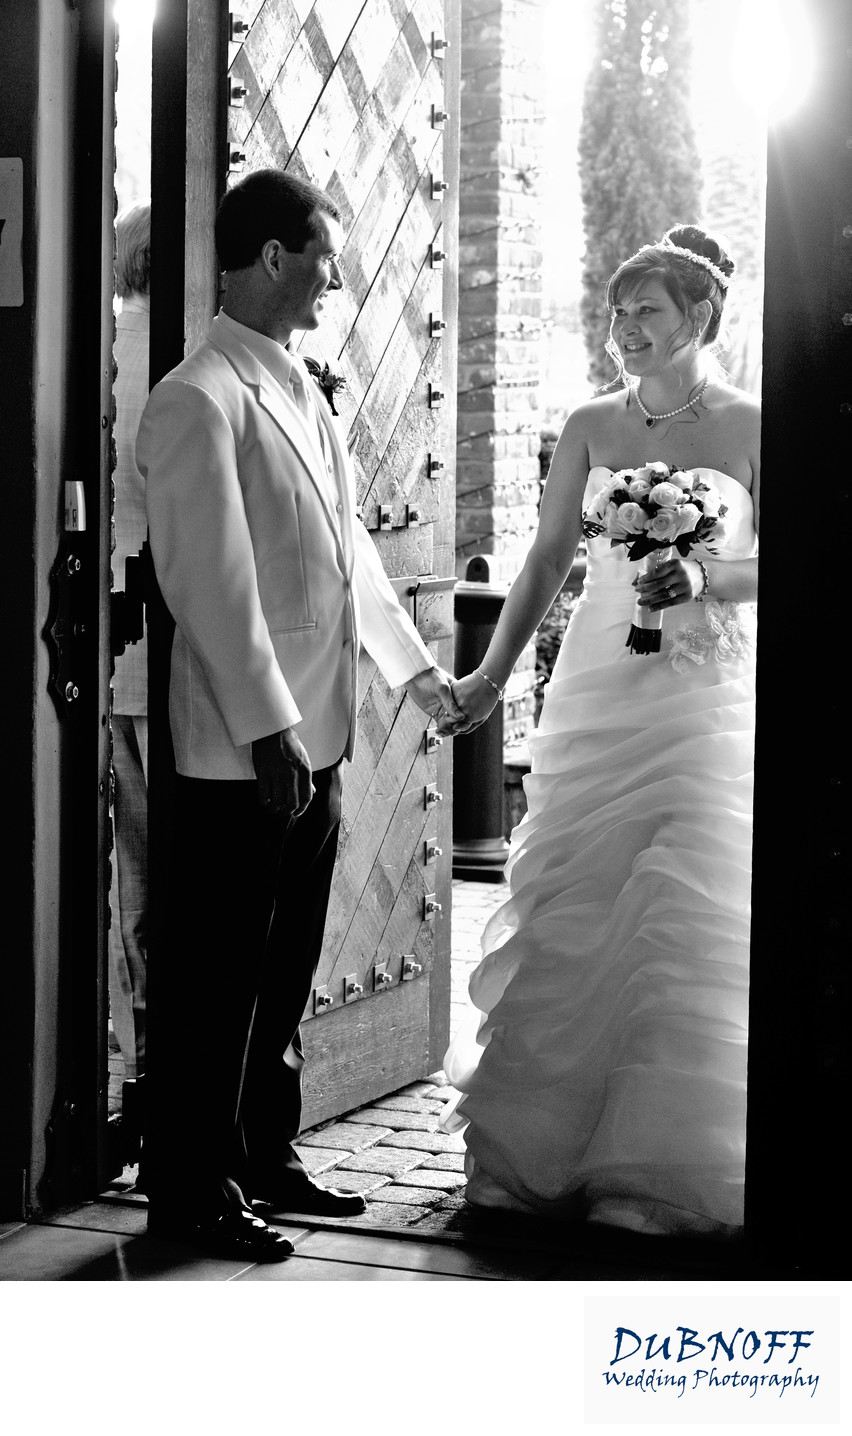 Wedding Photography at Livermore Valley Winery in black and white